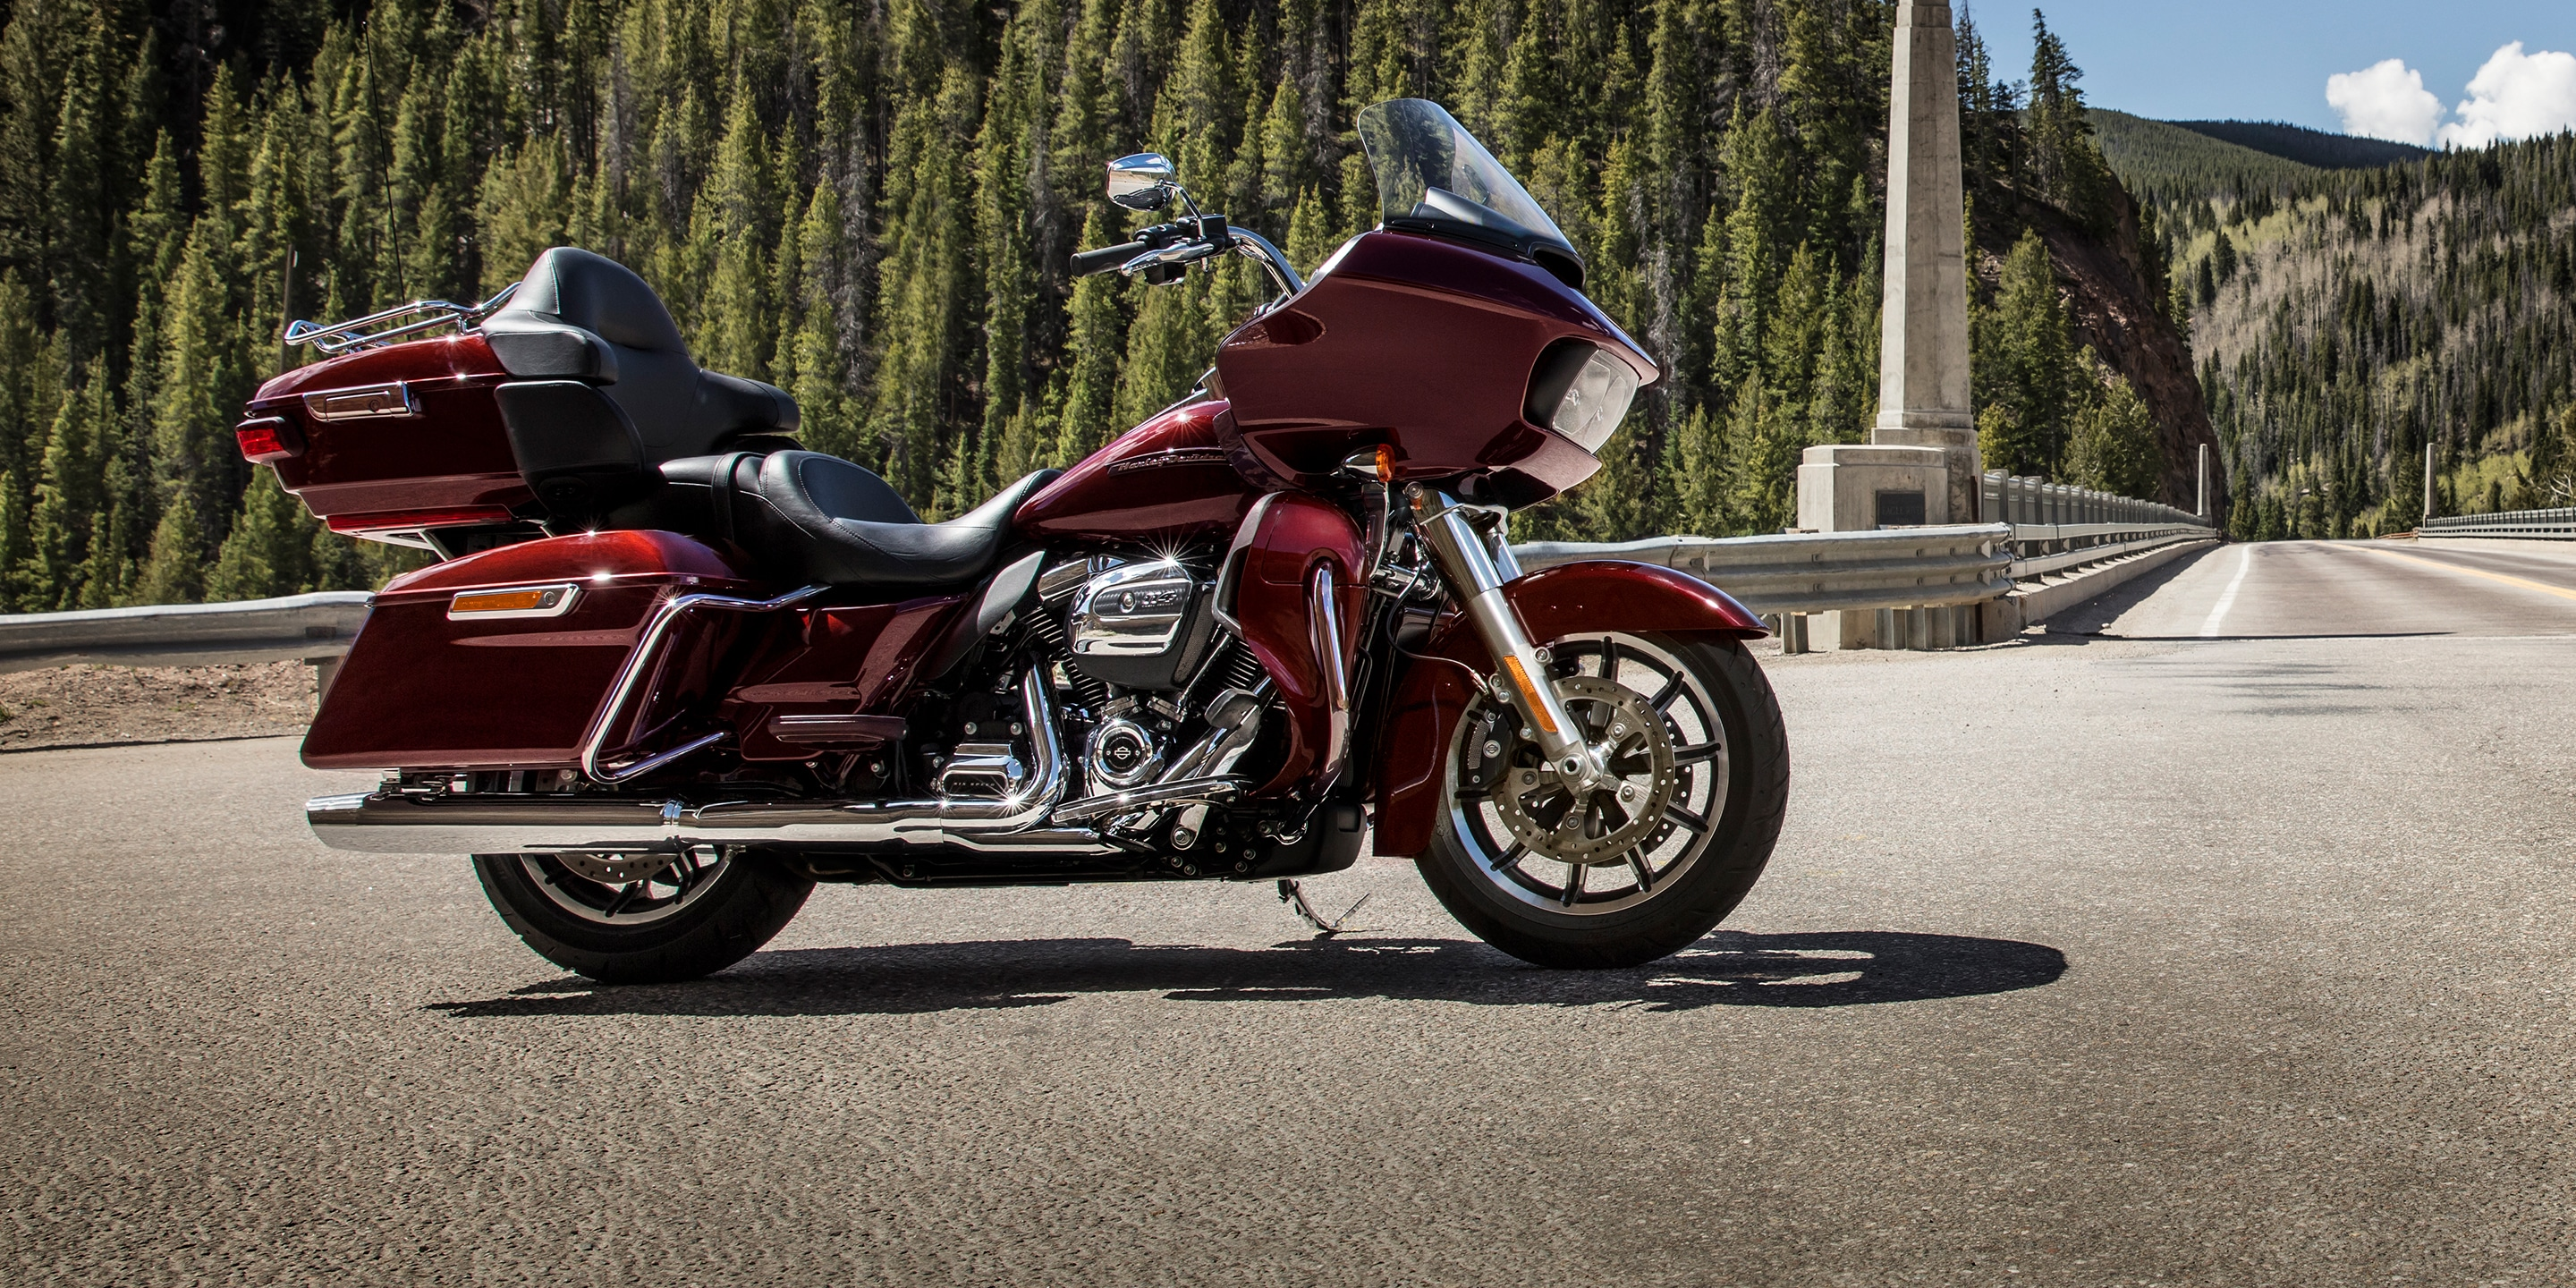 2019 Road Glide Ultra Motorcycle on street